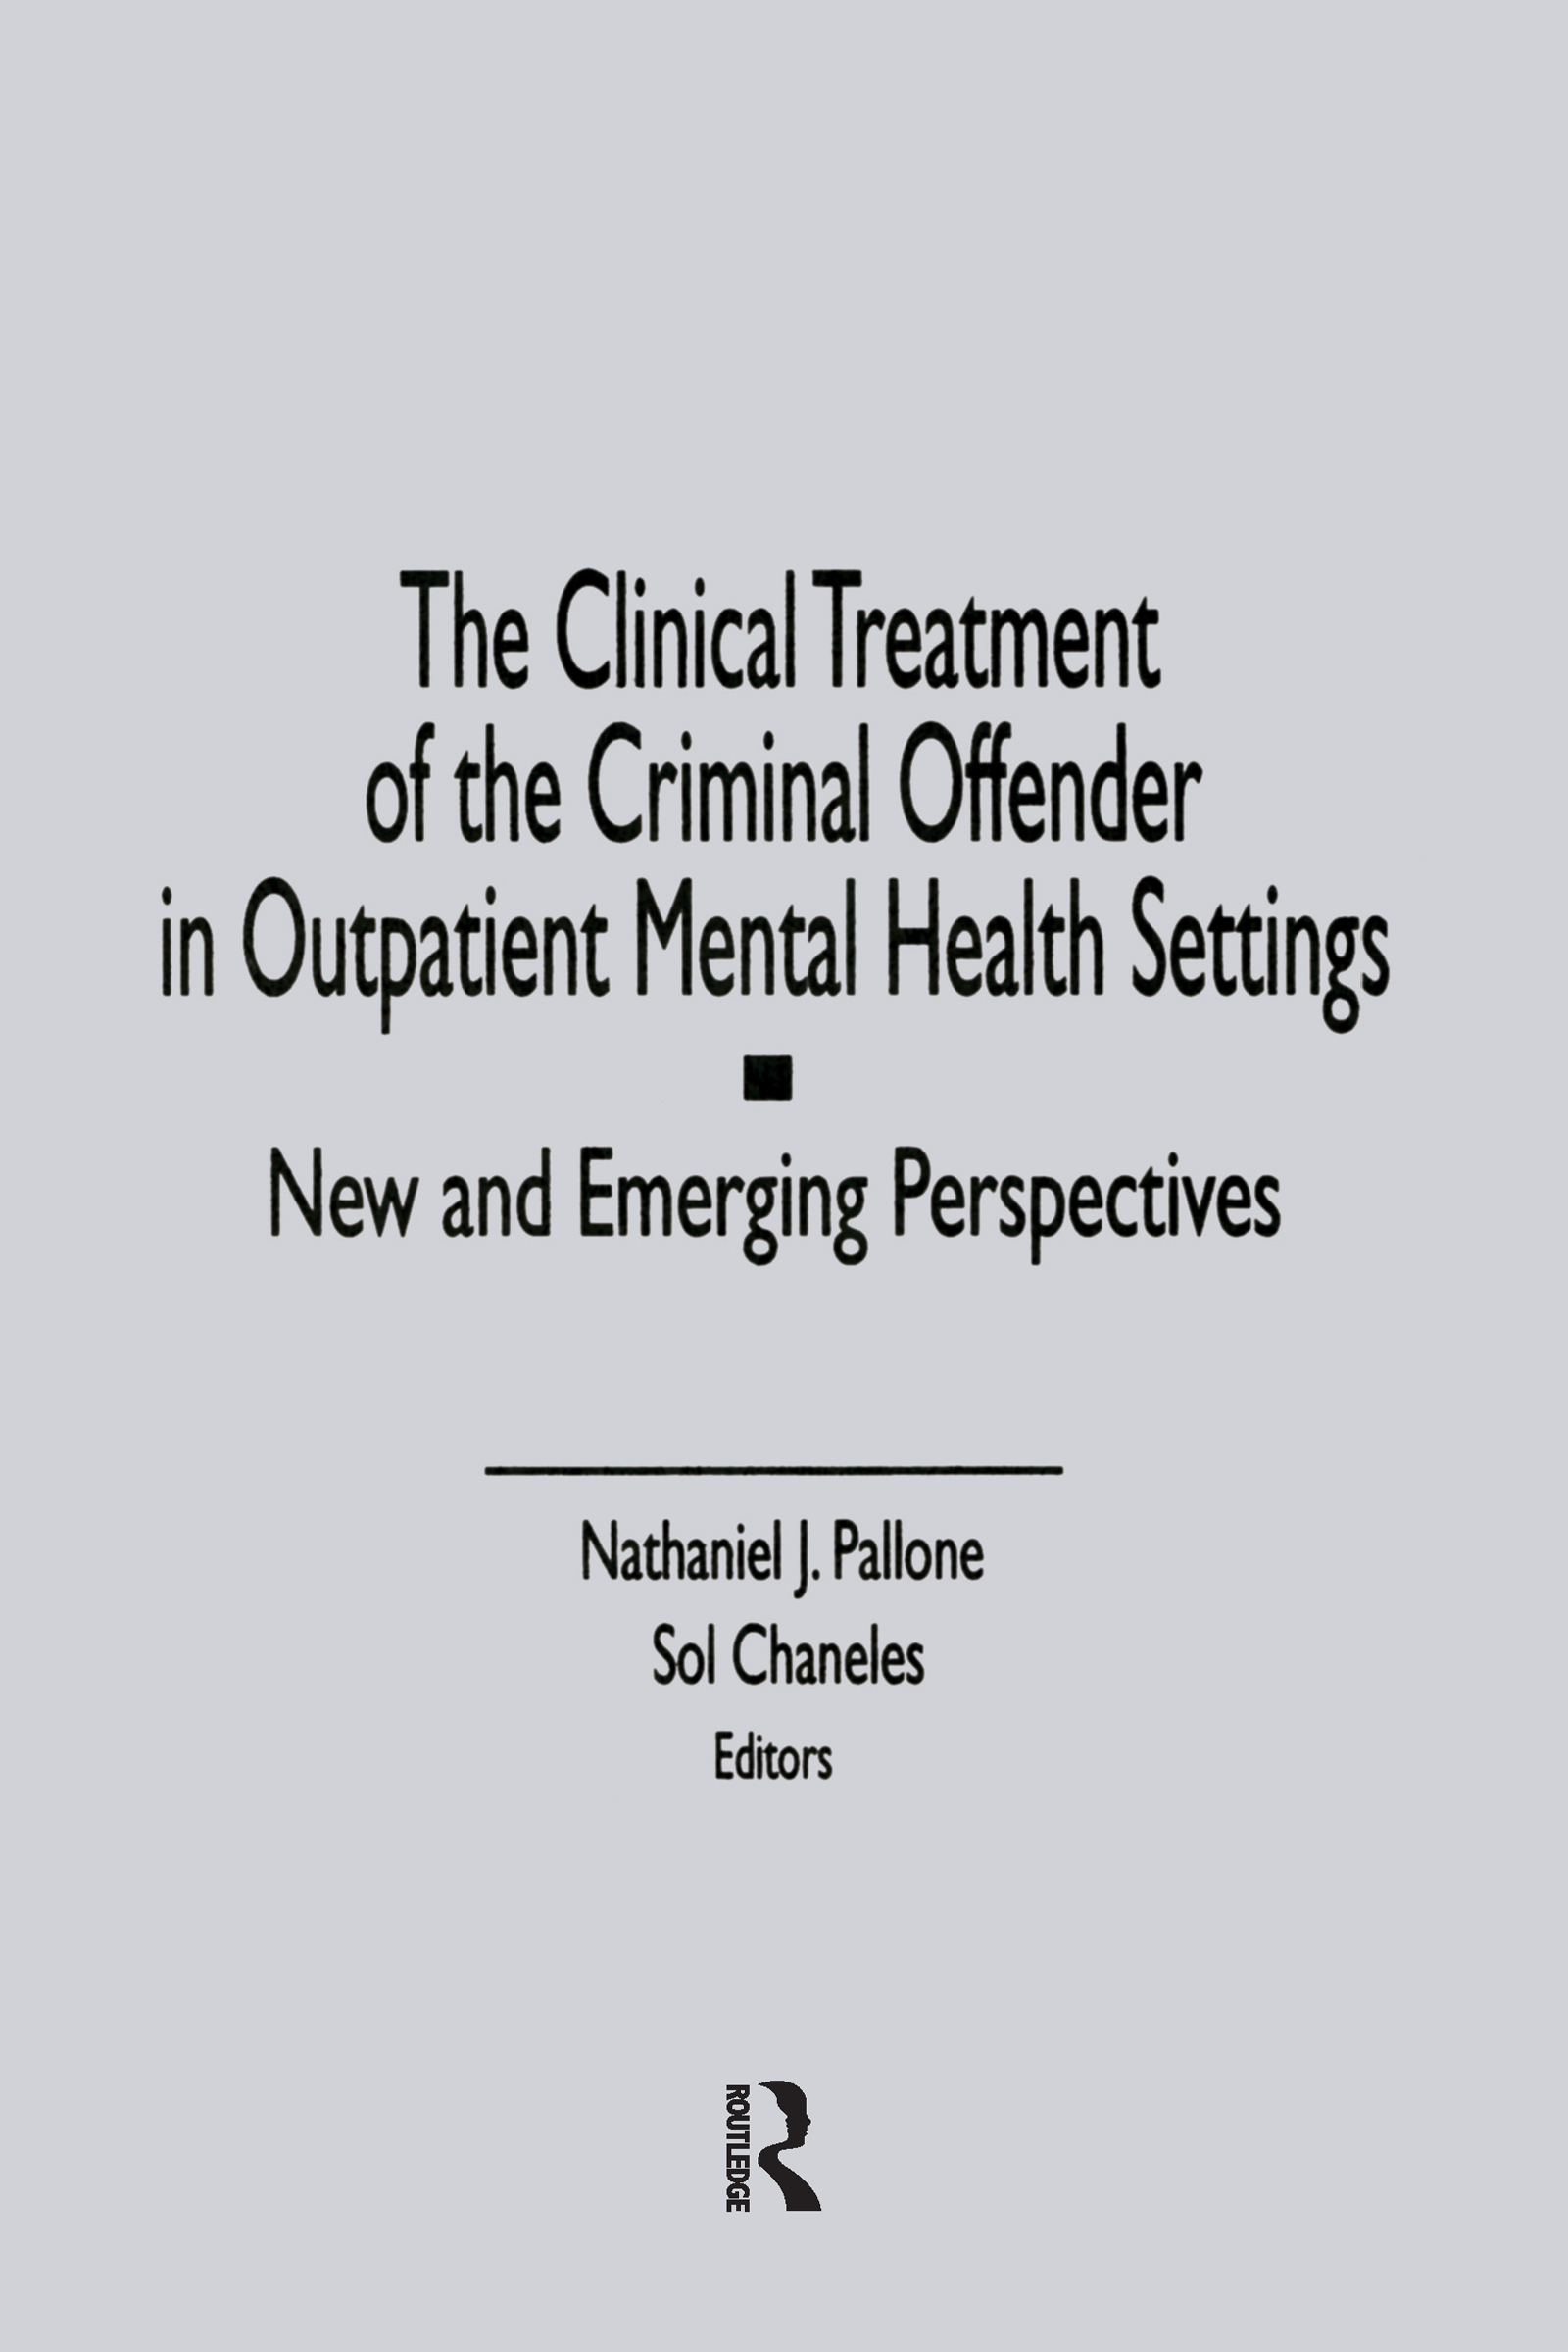 The Clinical Treatment of the Criminal Offender in Outpatient Mental Health Settings: New and Emerging Perspectives book cover